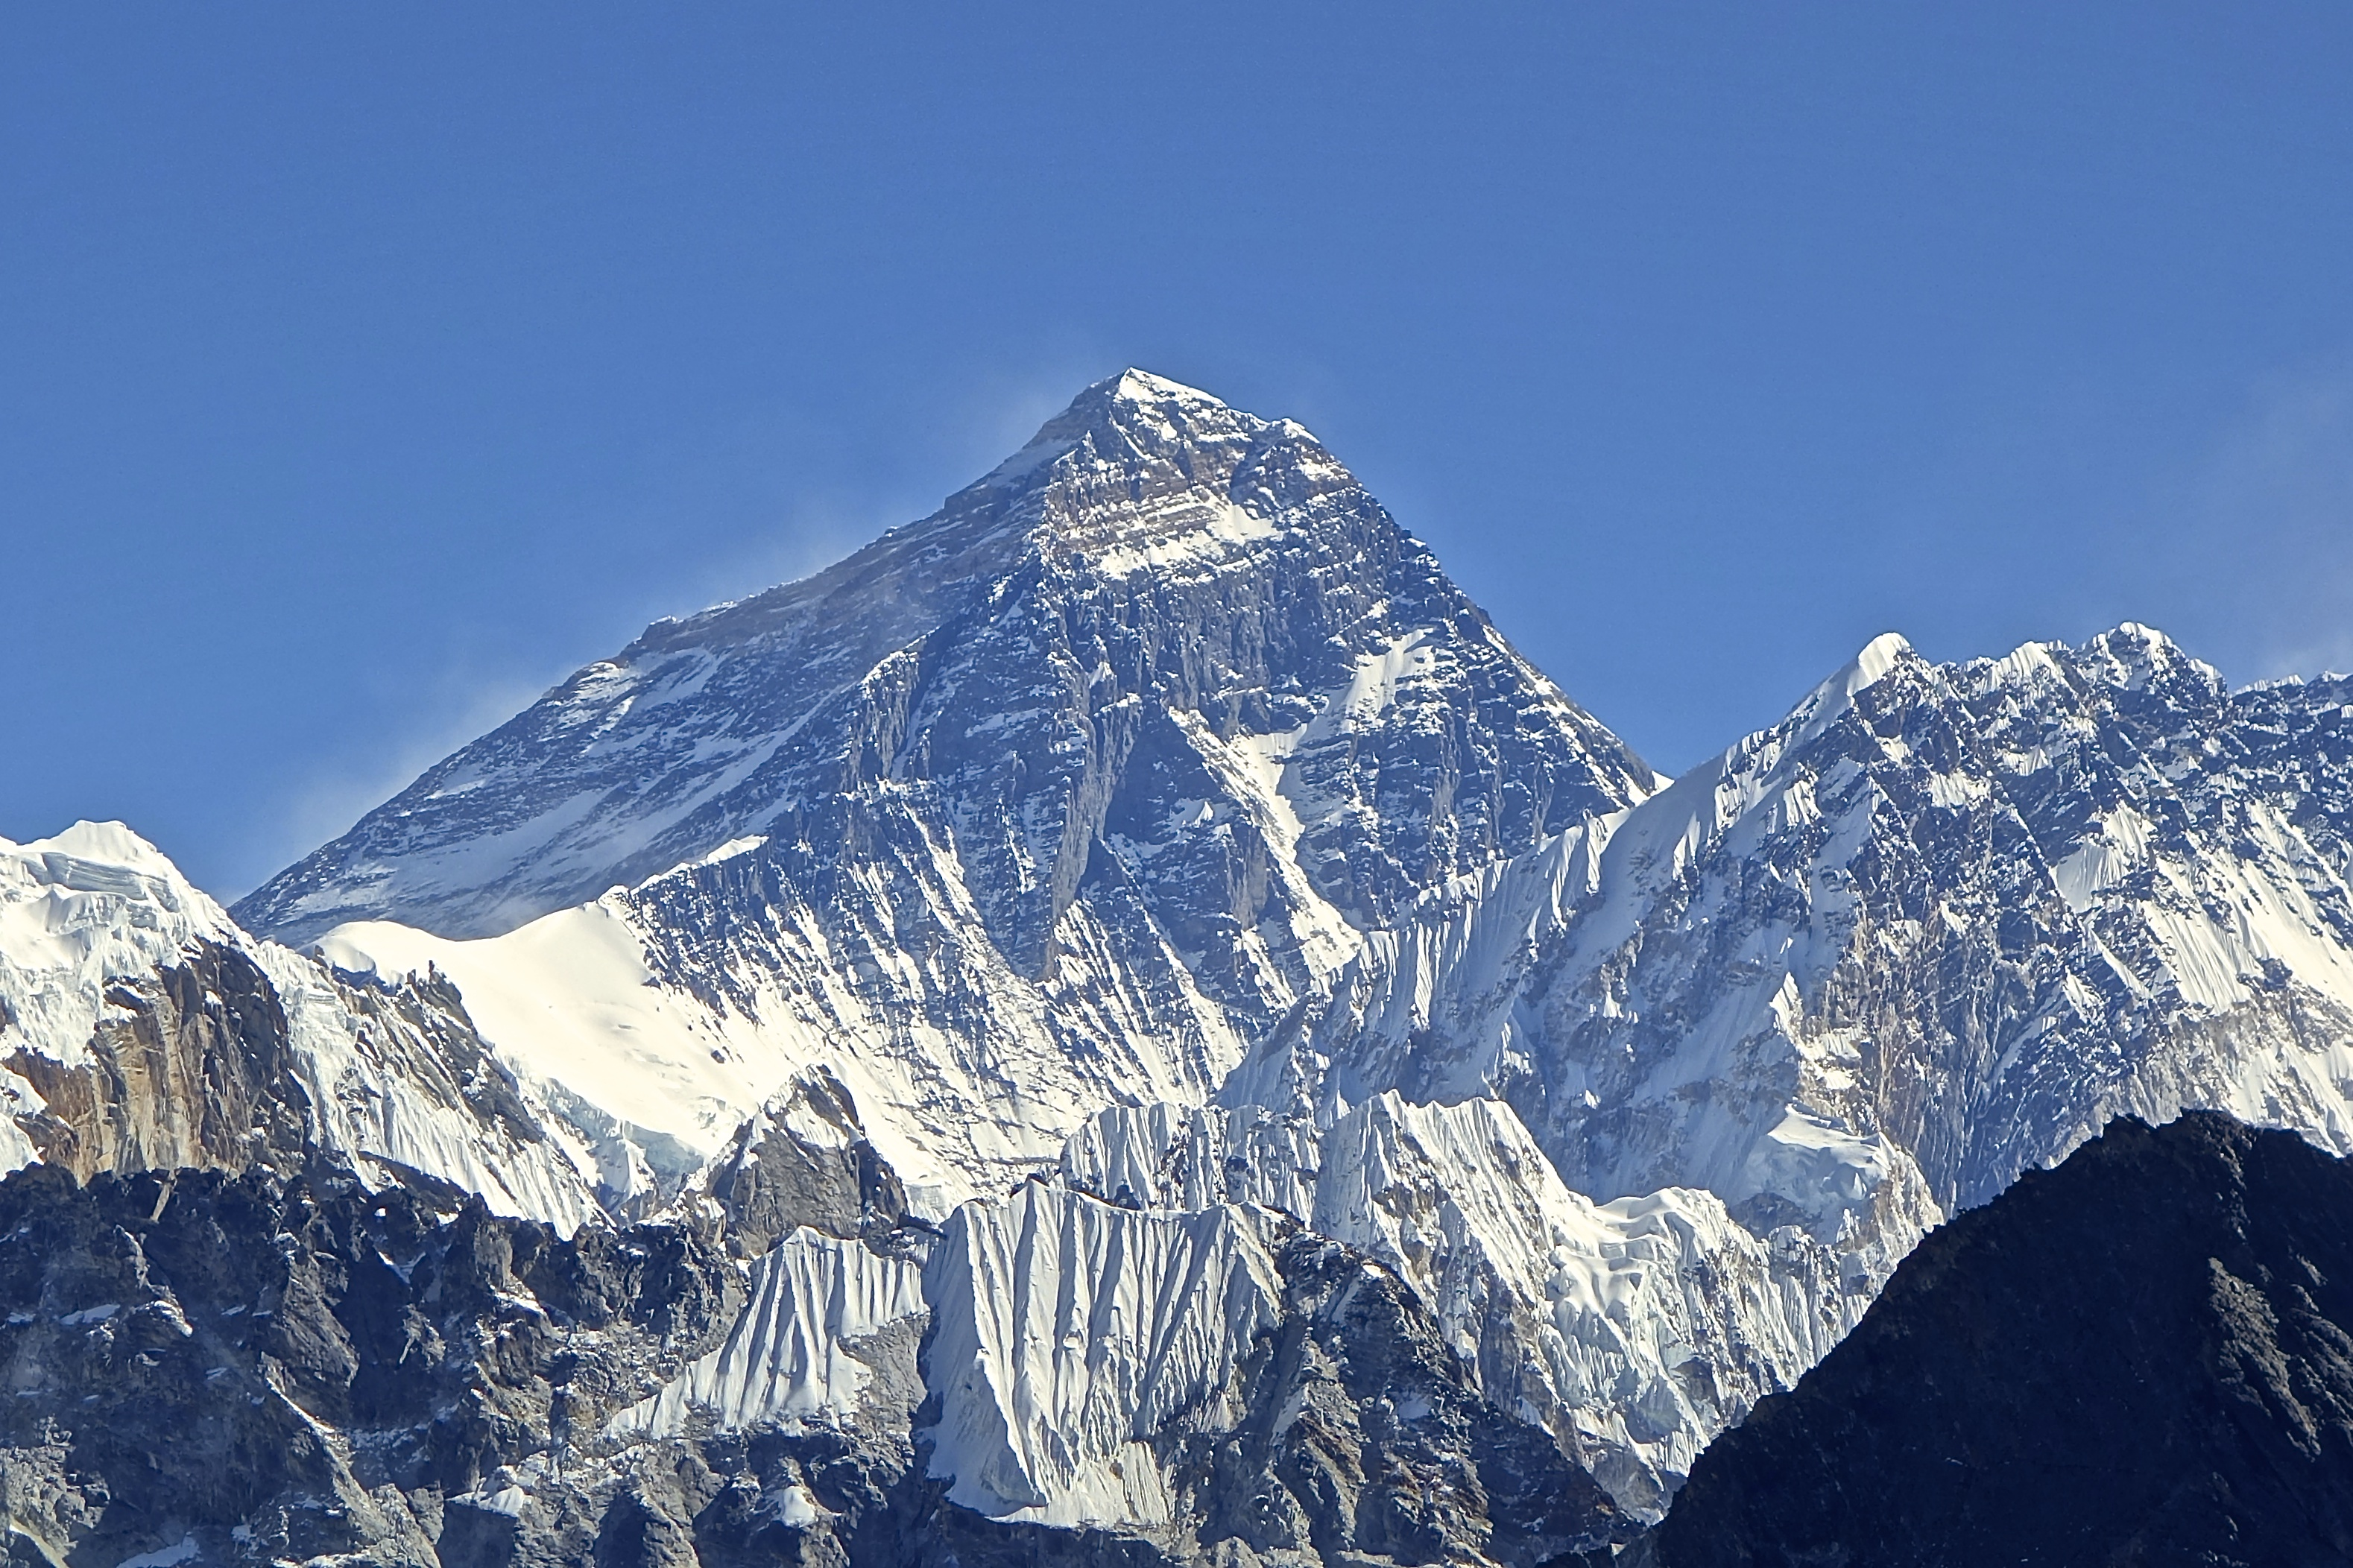 Mt._Everest_from_Gokyo_Ri_November_5,_2012